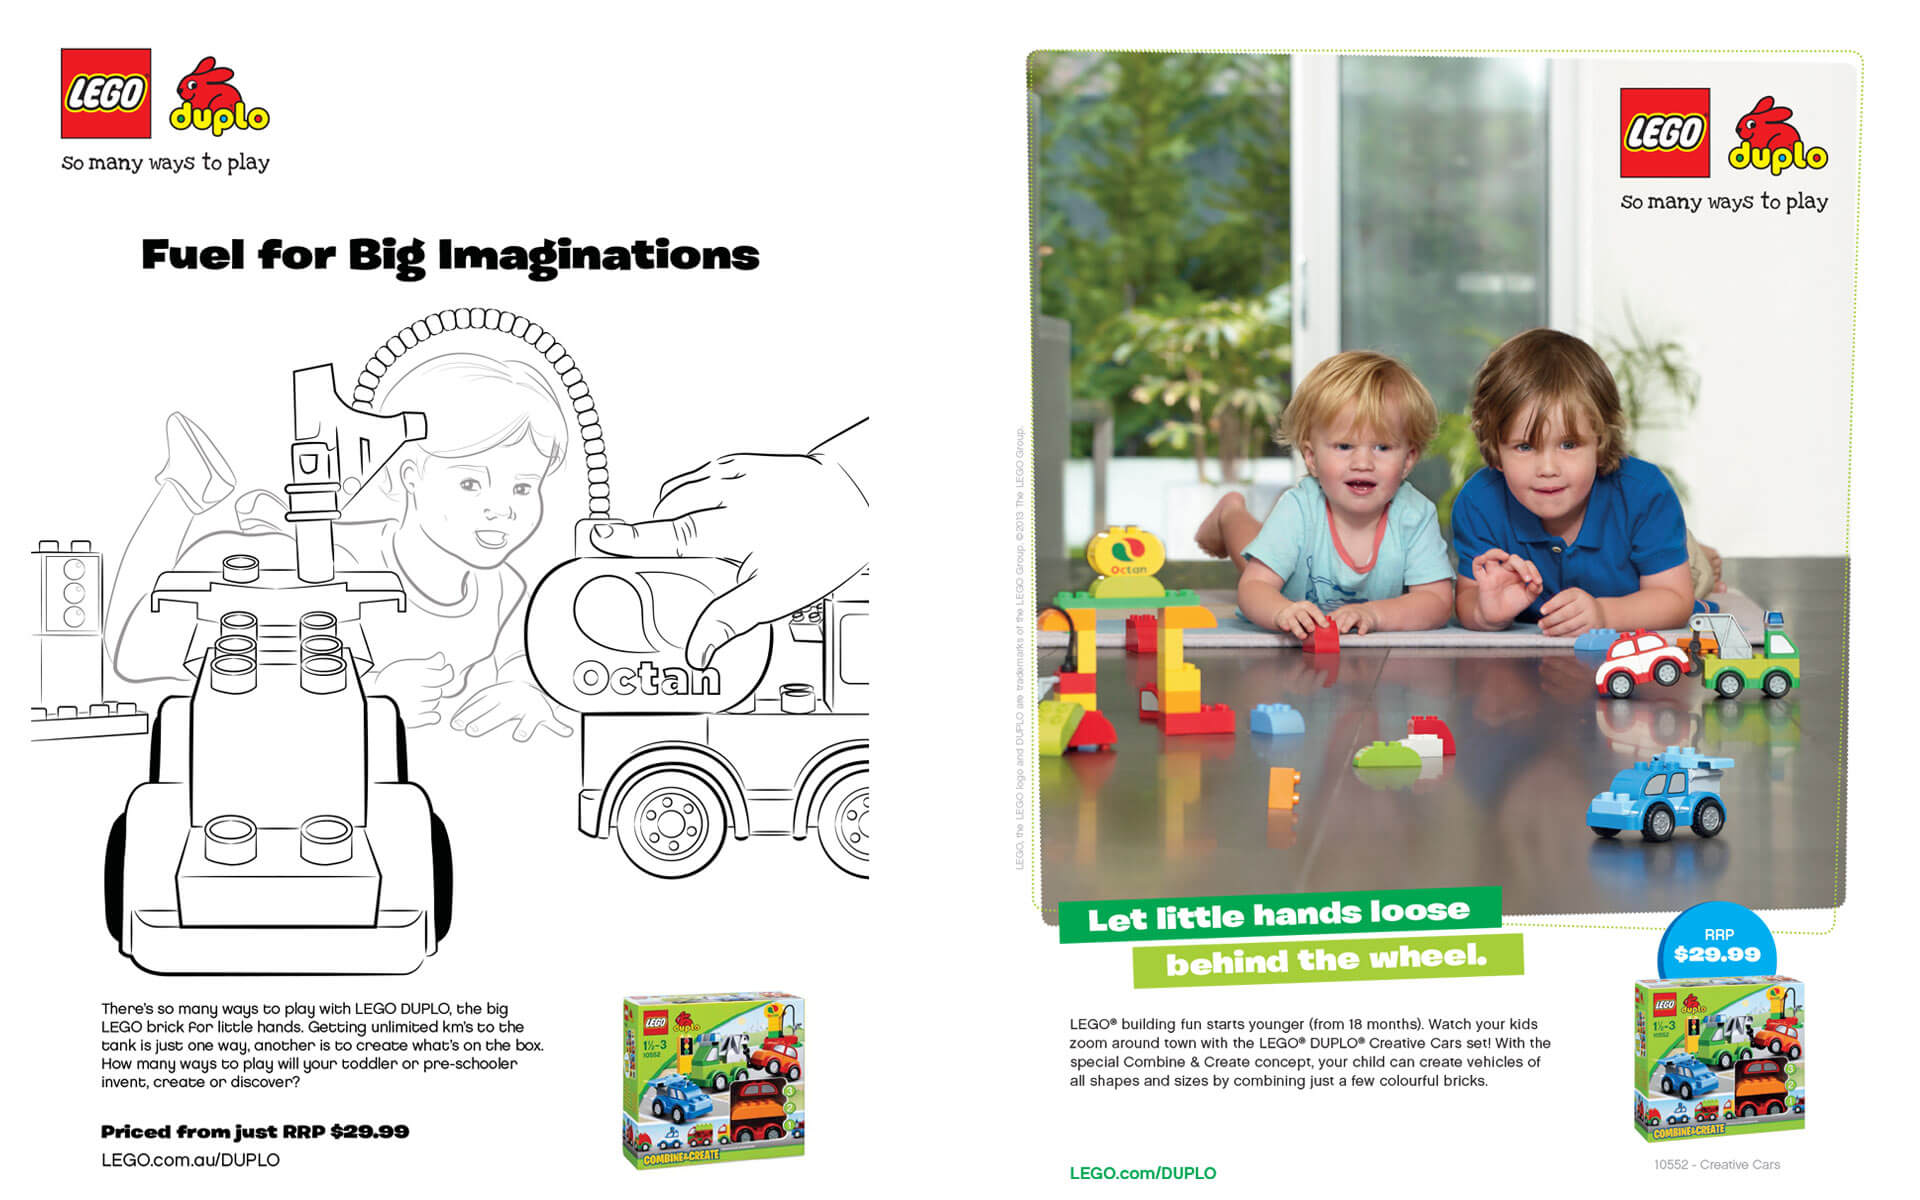 LEGO Duplo Let little hands loose behind the wheel, Ad scamp and final design